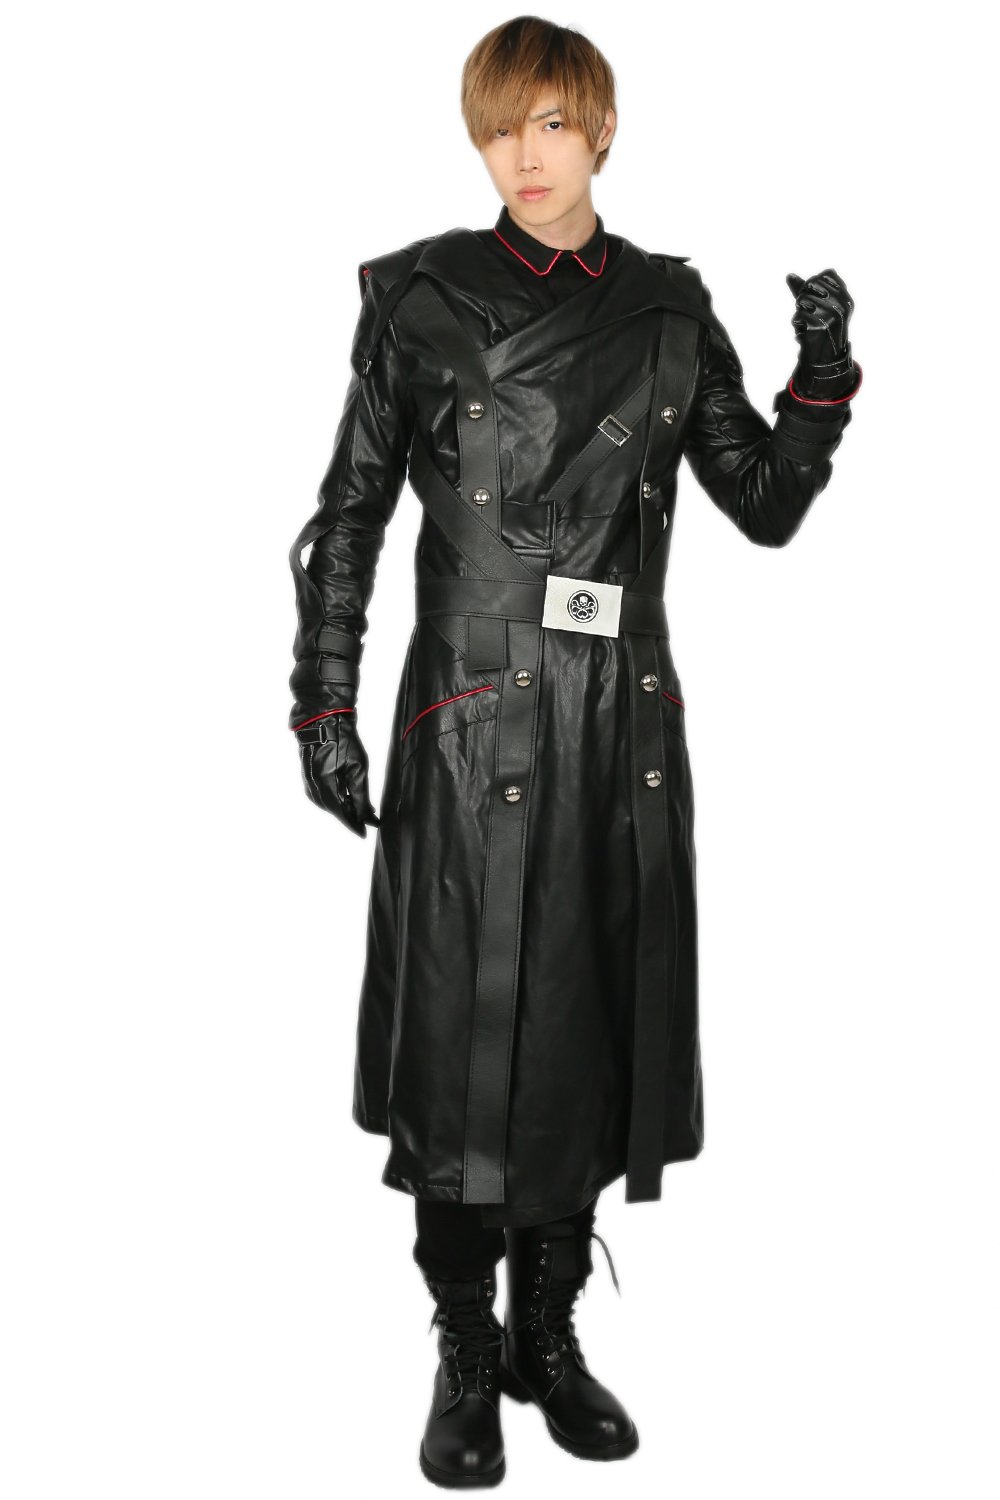 Adult Red Skull Cosplay Costume Outfit Suit for Halloween XL